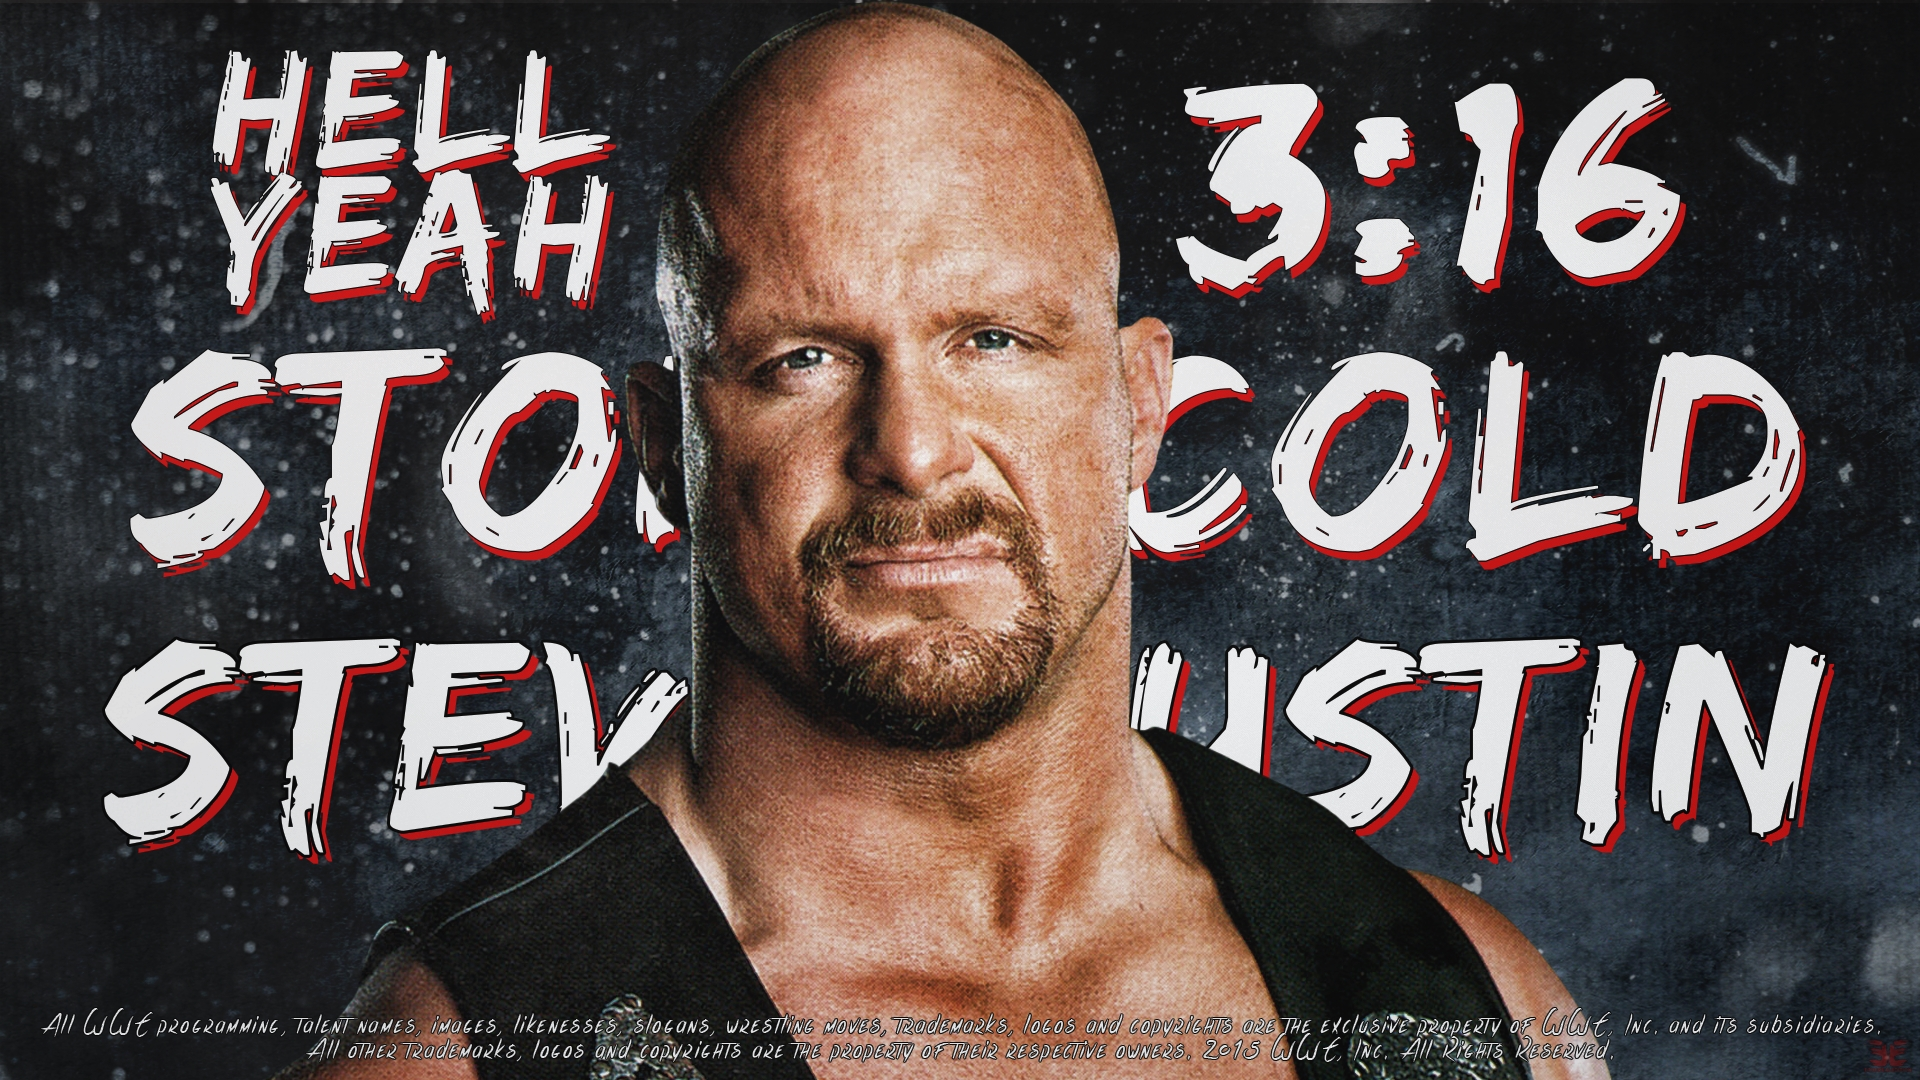 stone cold steve austin wallpaper 3 16 hd free